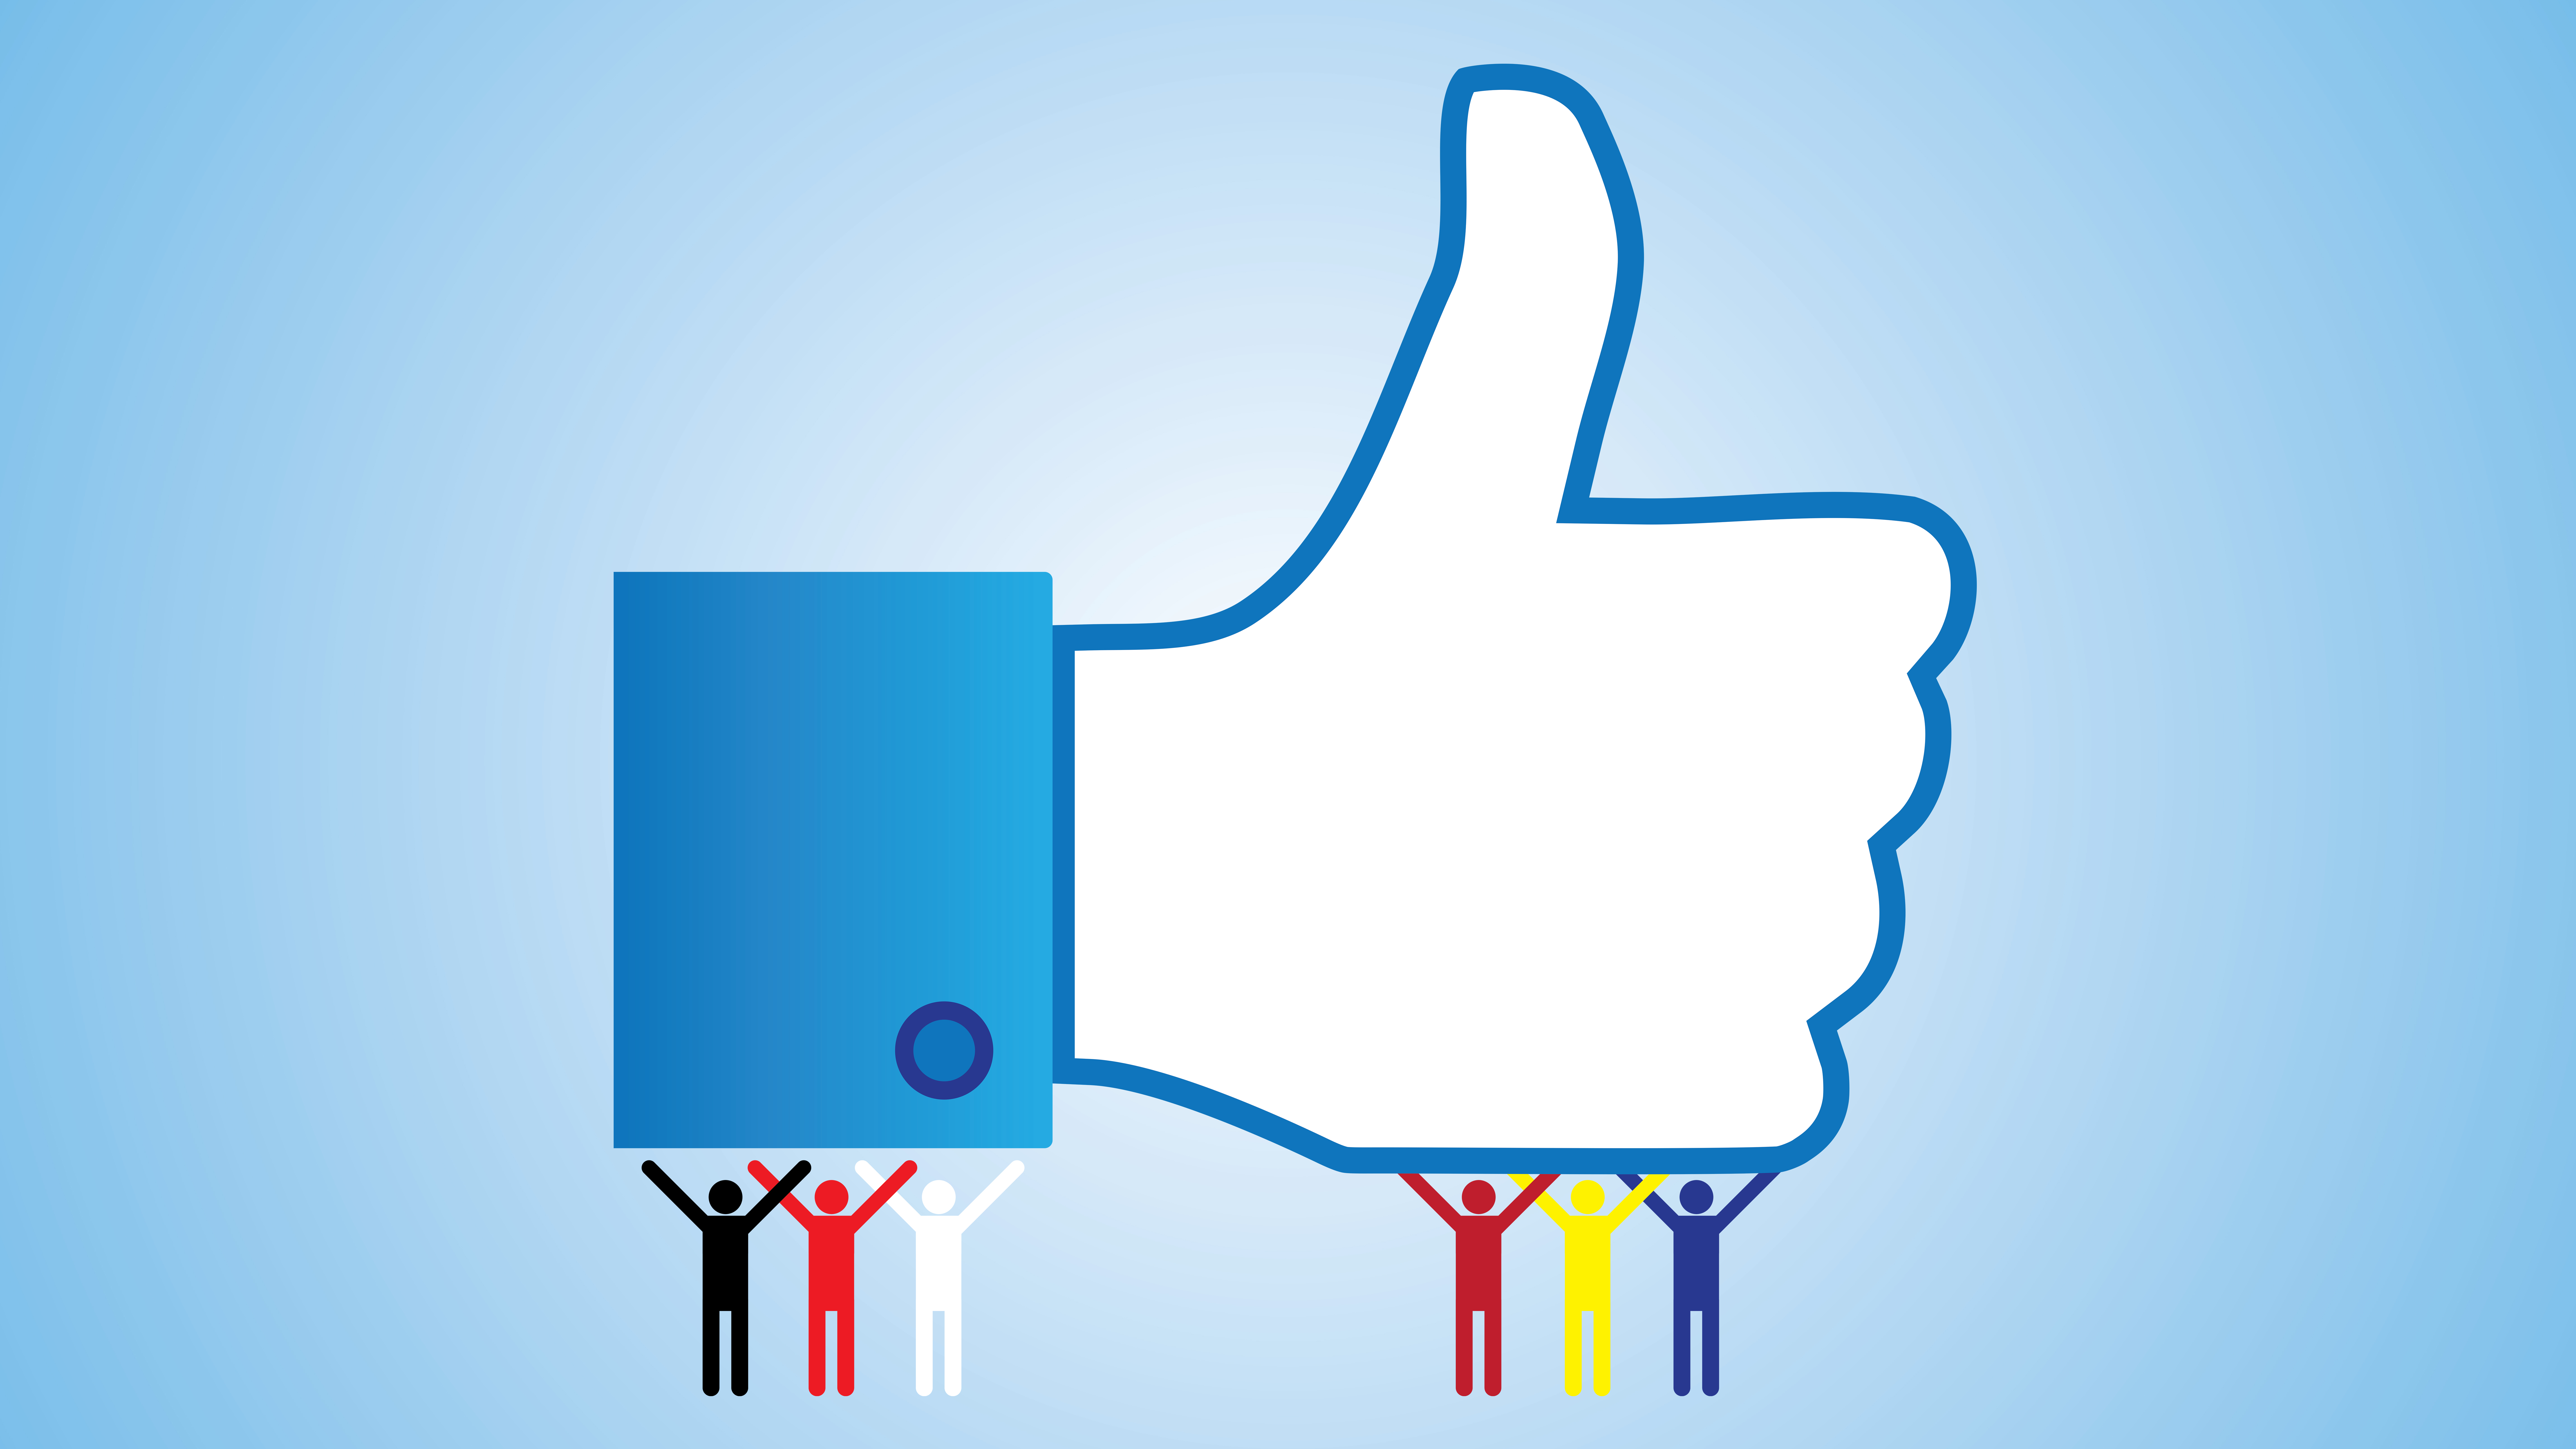 Facebook 'Like' icon being held up by stick figures